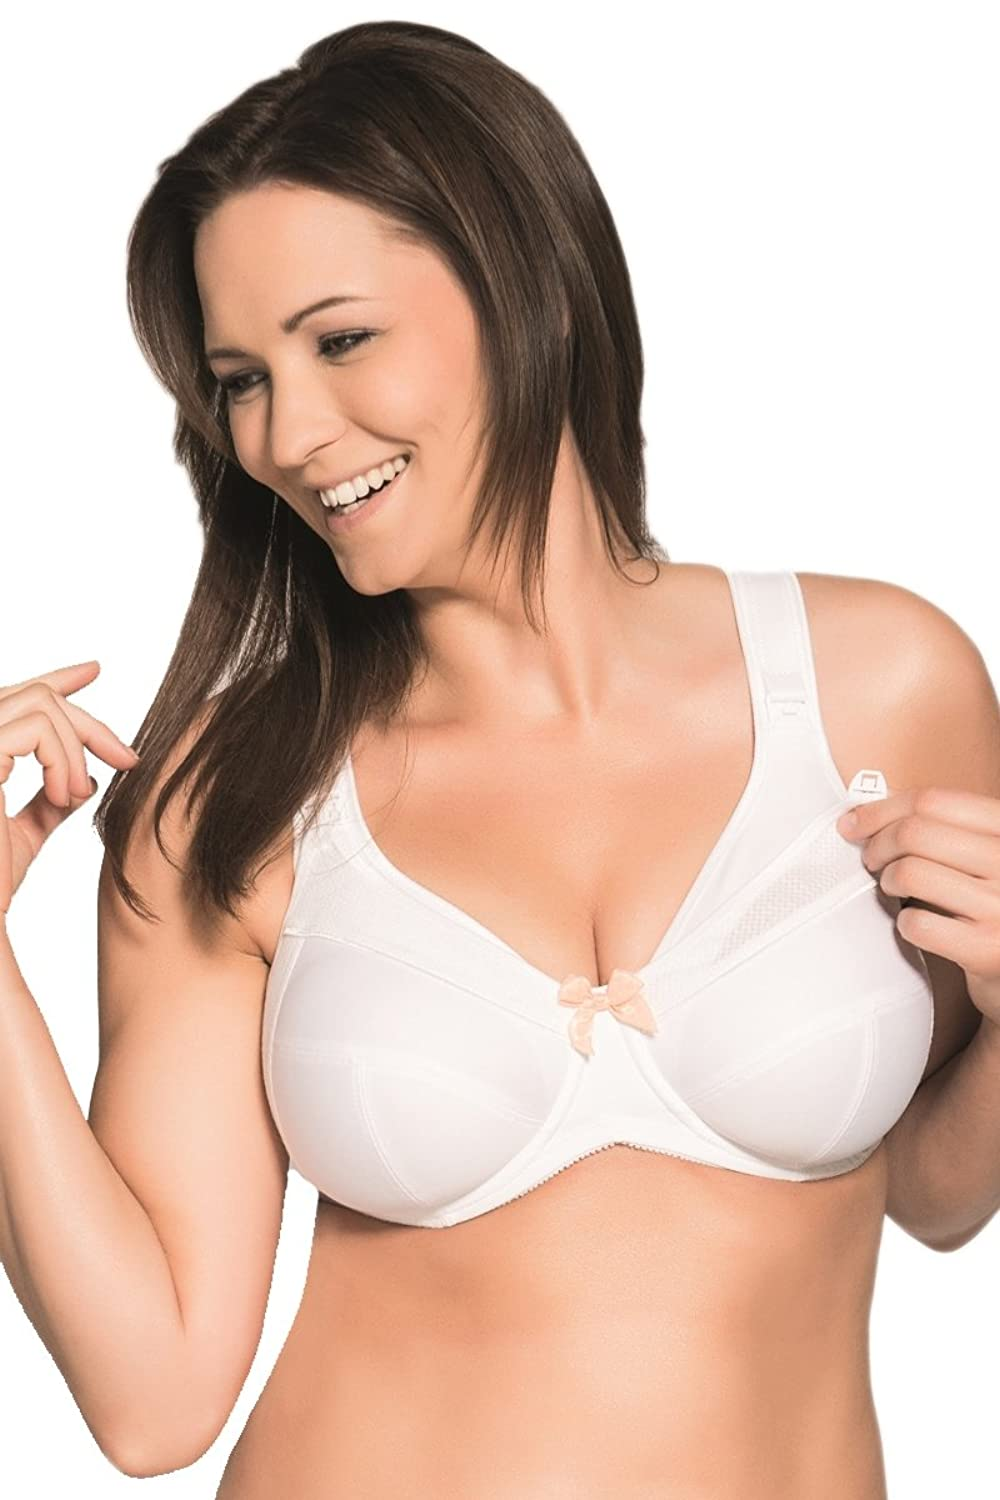 Ulla Women's Nursing Bra 6124 White 46 I